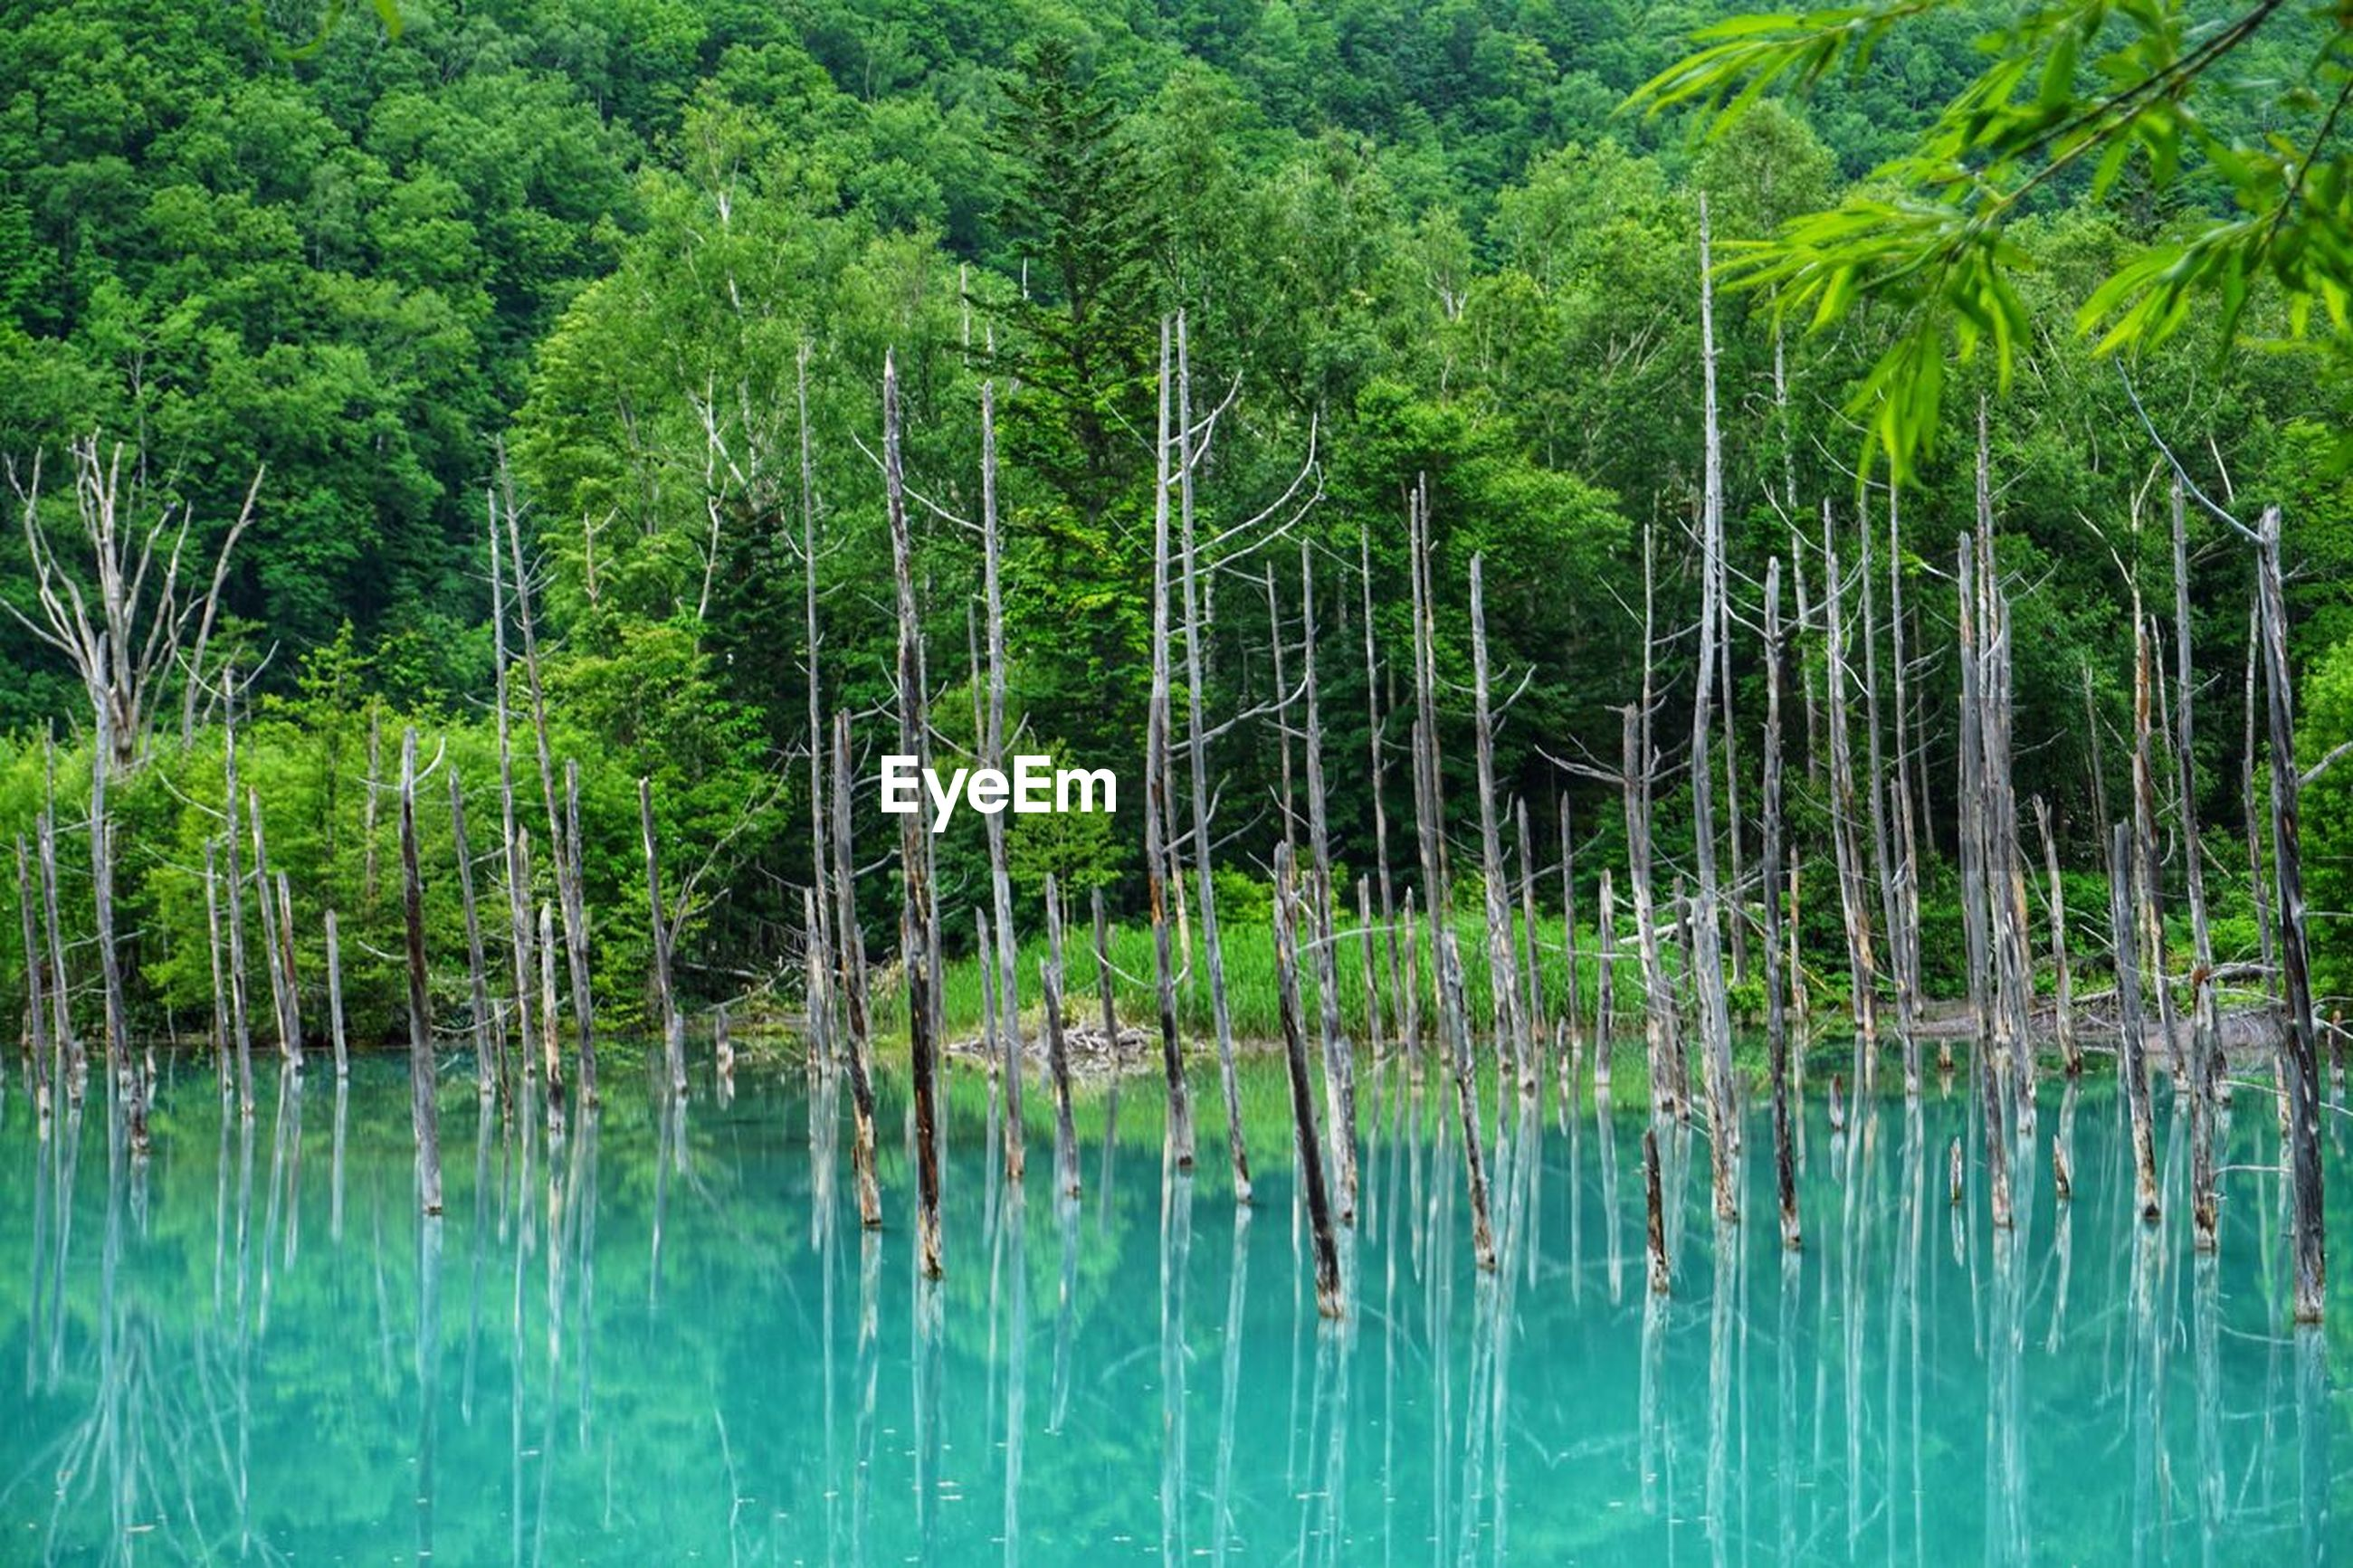 tree, plant, water, forest, green color, reflection, beauty in nature, land, nature, tranquility, no people, scenics - nature, lake, day, tranquil scene, growth, foliage, lush foliage, environment, woodland, outdoors, rainforest, swamp, bamboo - plant, turquoise colored